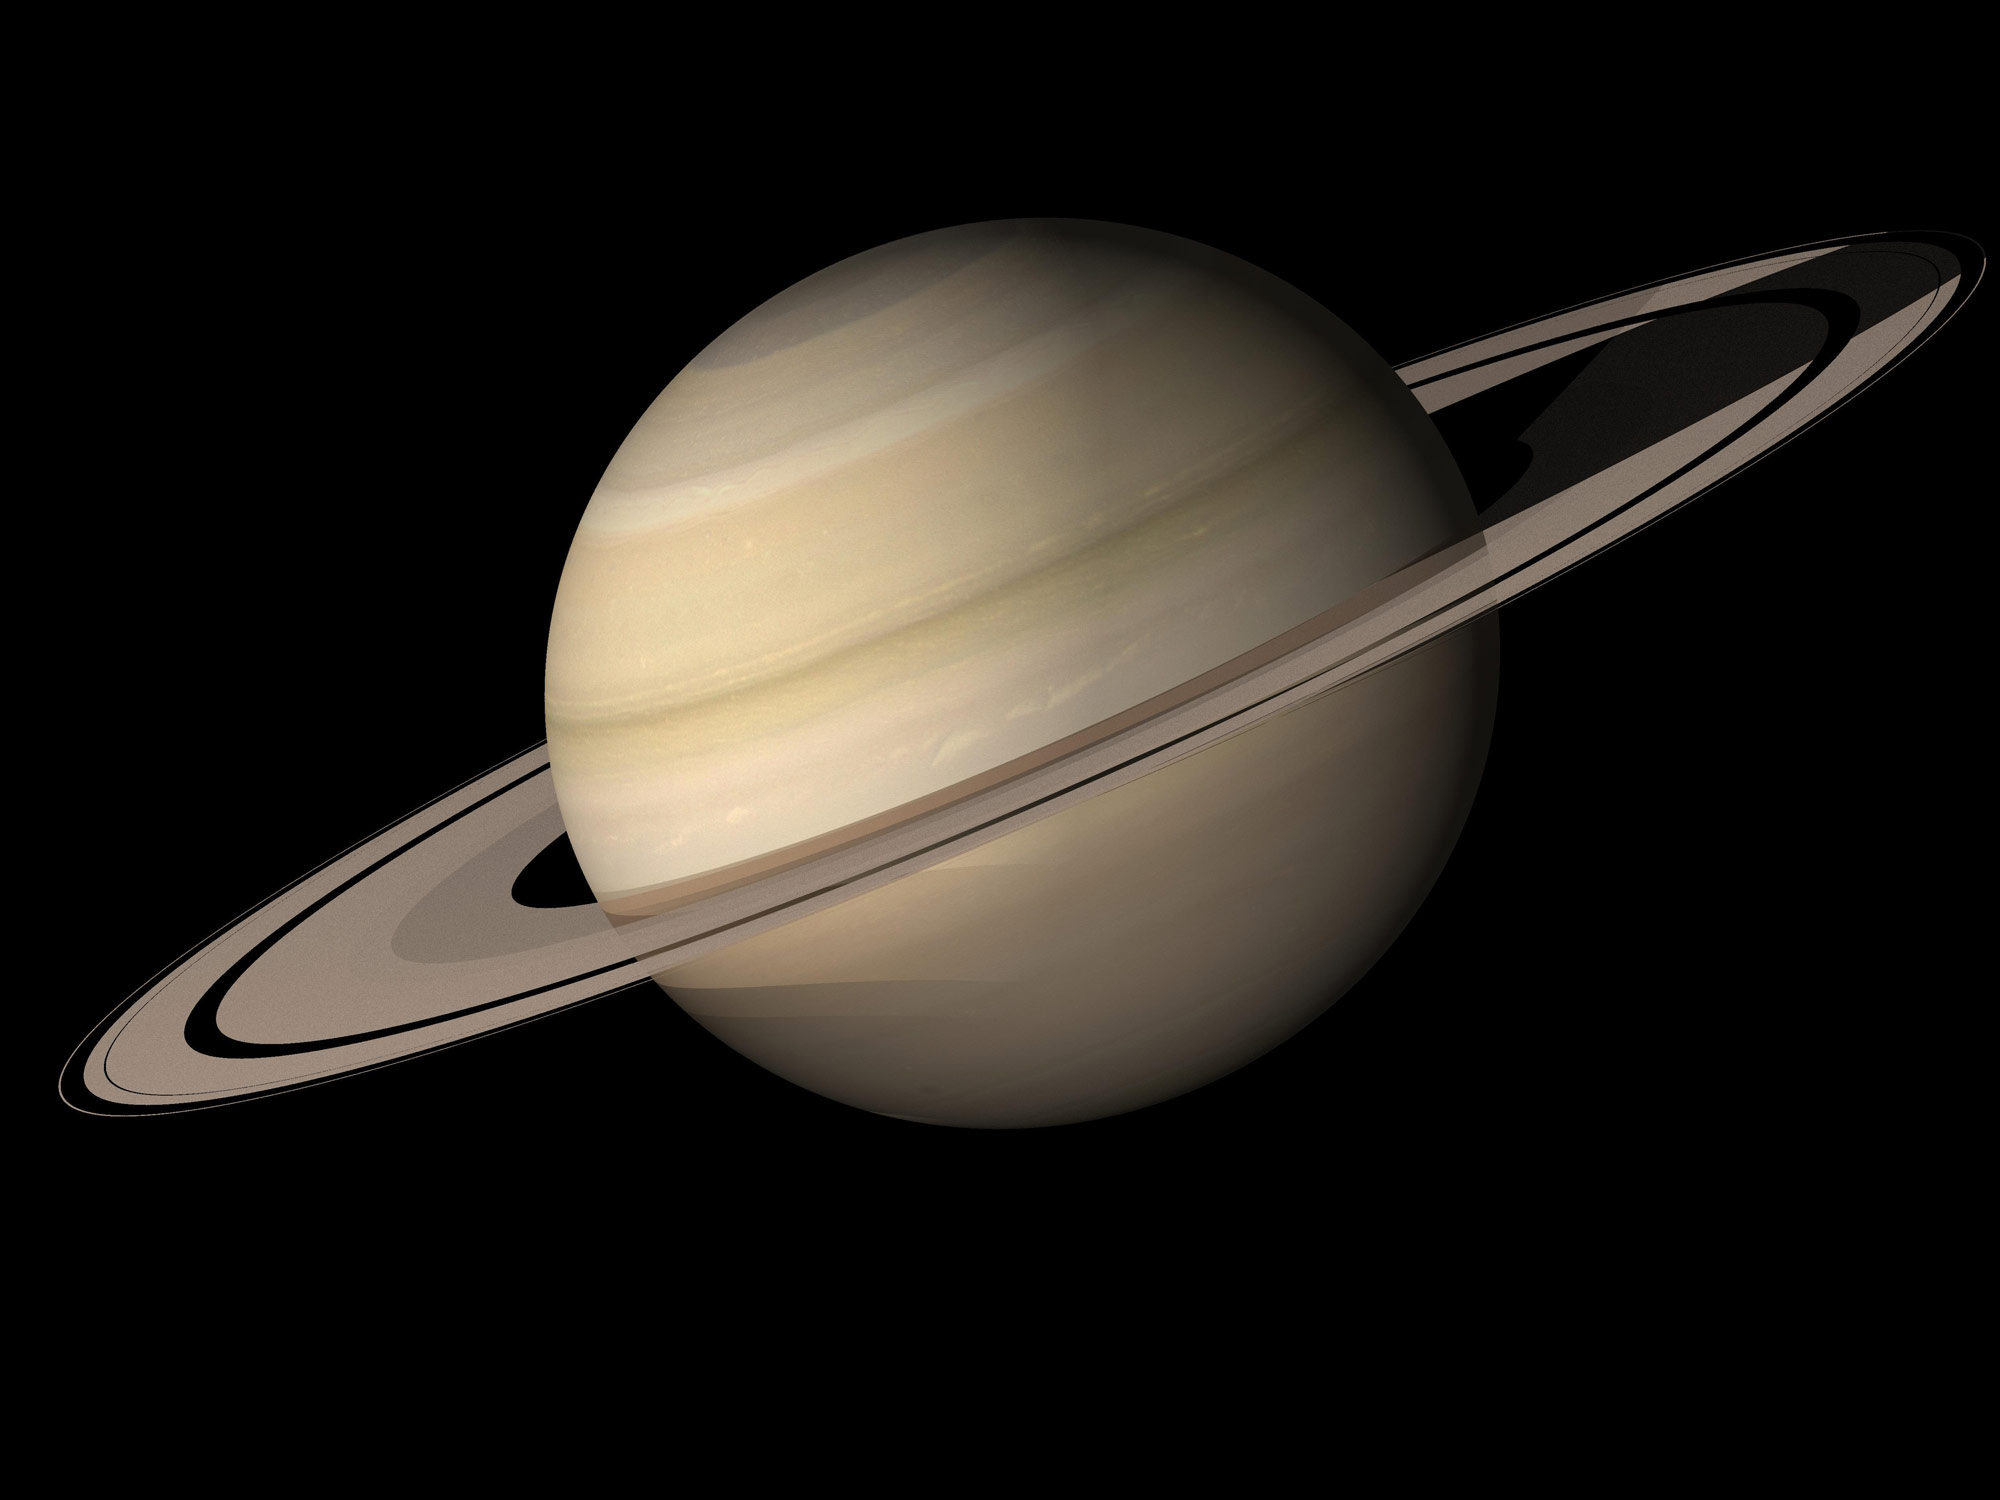 Saturn Backgrounds on Wallpapers Vista